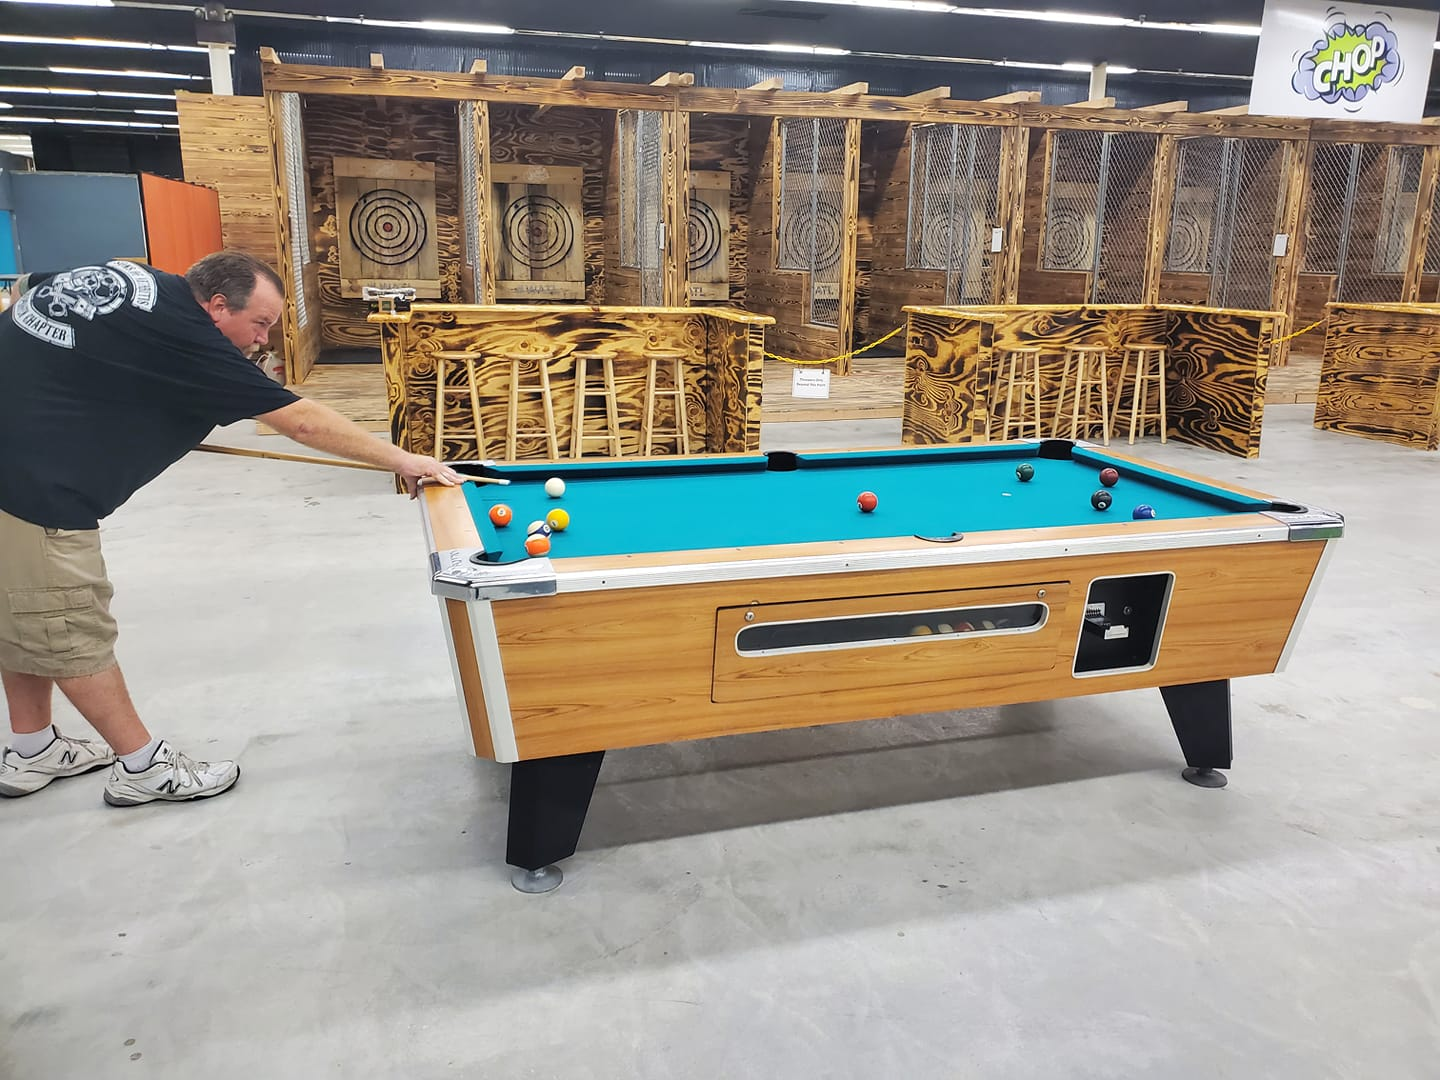 Photo of a man playing billiards